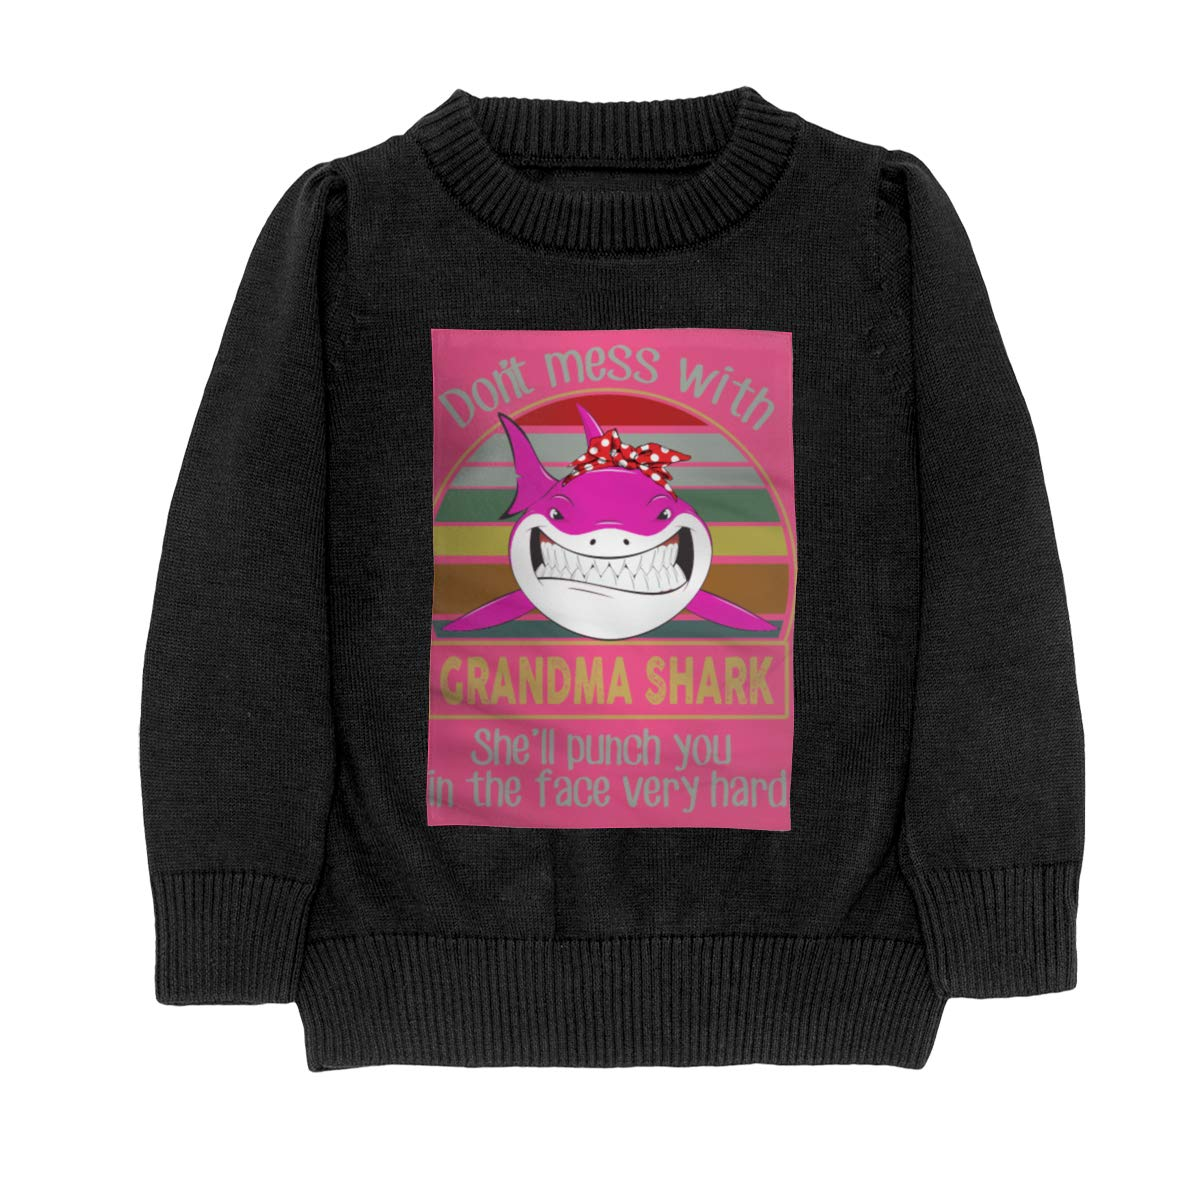 Dont Mess with Grandma Shark Knit Sweaters Pullover for Youth Girls